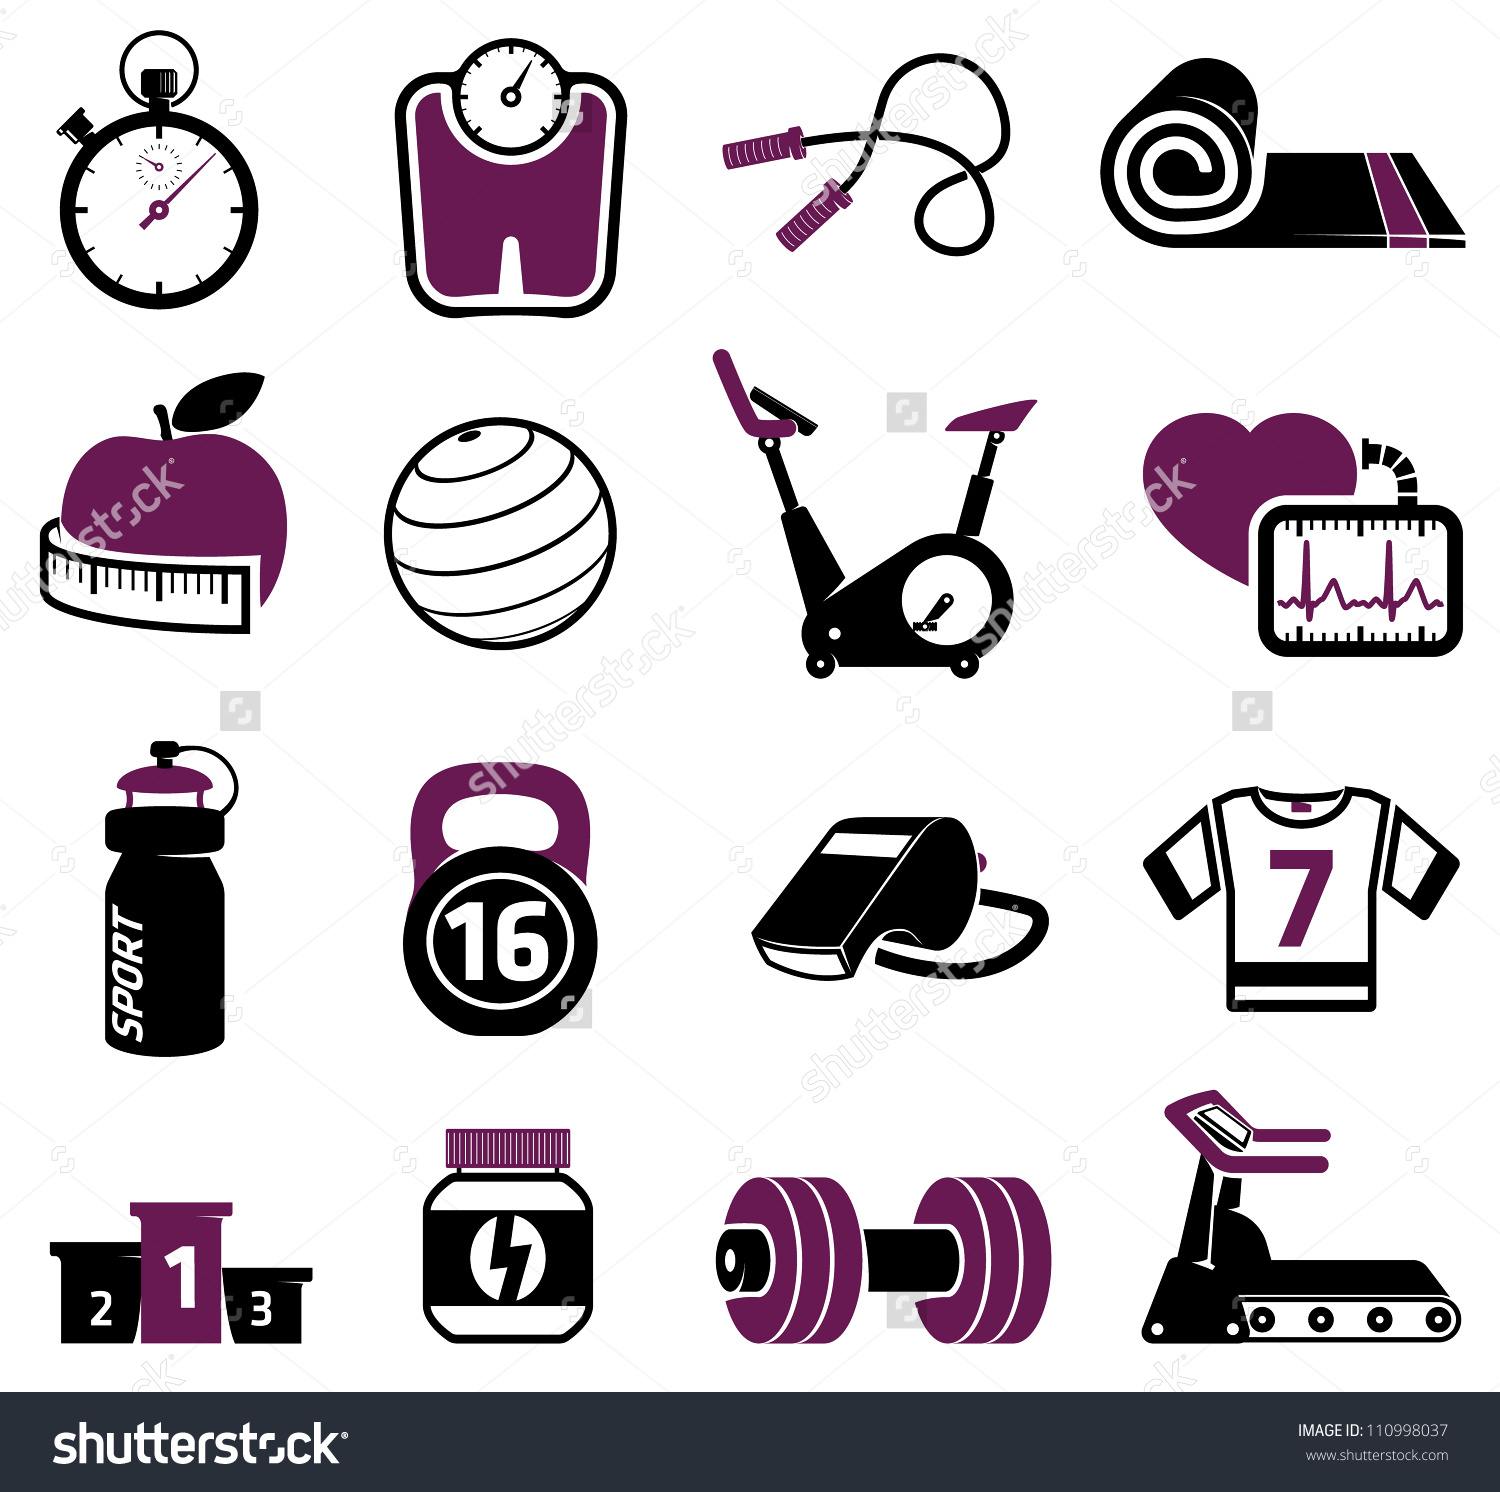 Work out equipment clipart clipart stock Fitness Equipment Collection Stock Vector 110998037 - Shutterstock clipart stock